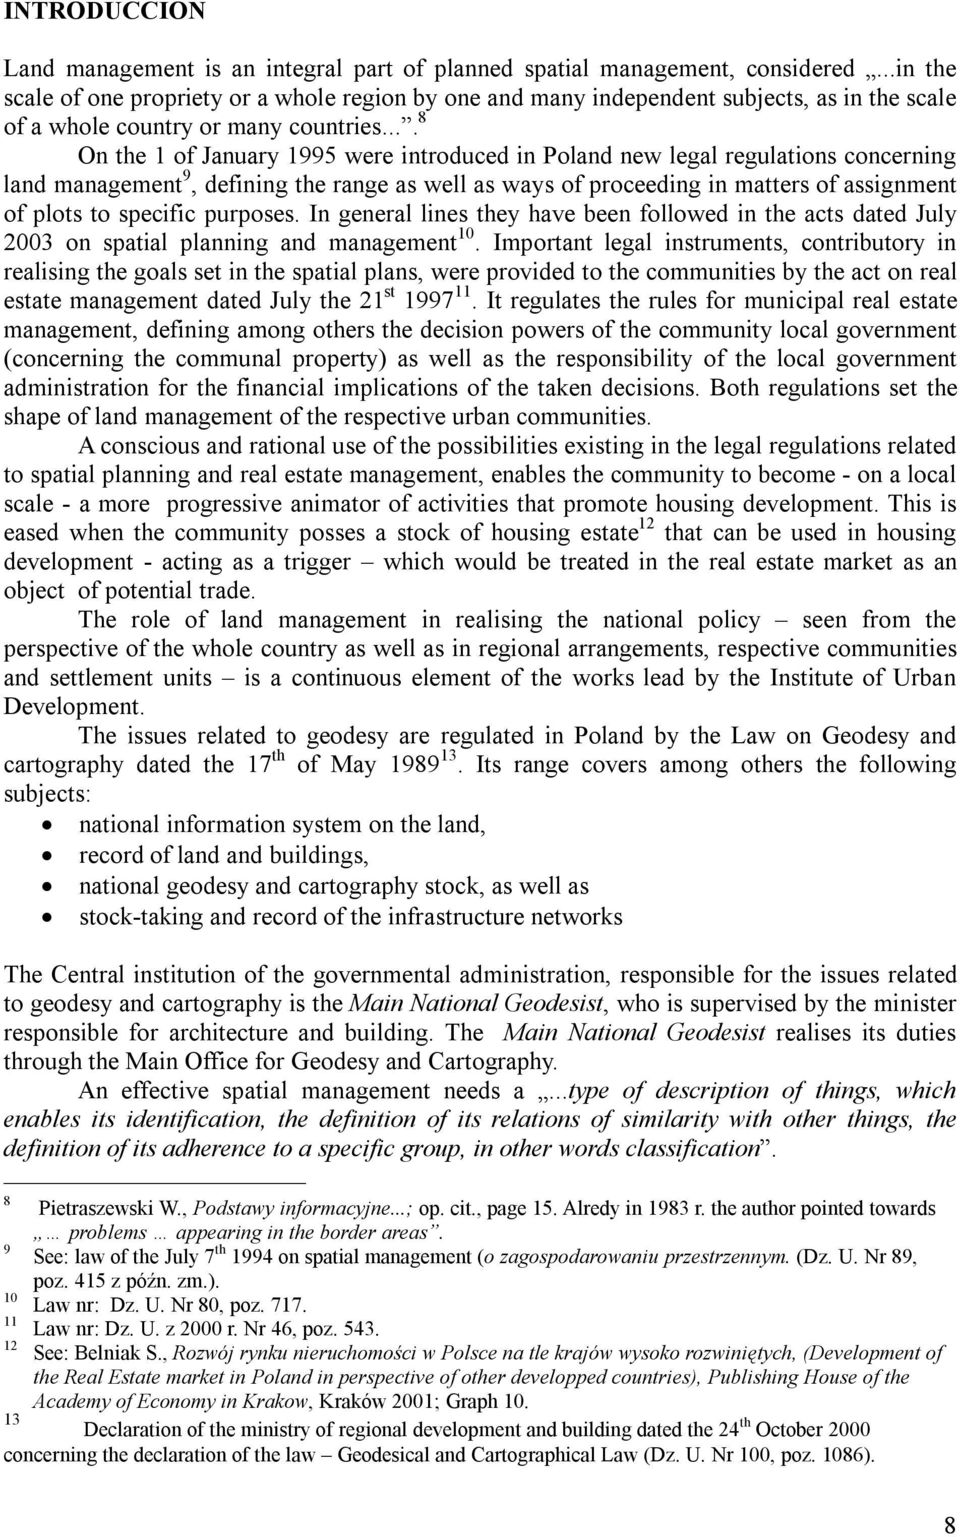 ... 8 On the 1 of January 1995 were introduced in Poland new legal regulations concerning land management 9, defining the range as well as ways of proceeding in matters of assignment of plots to